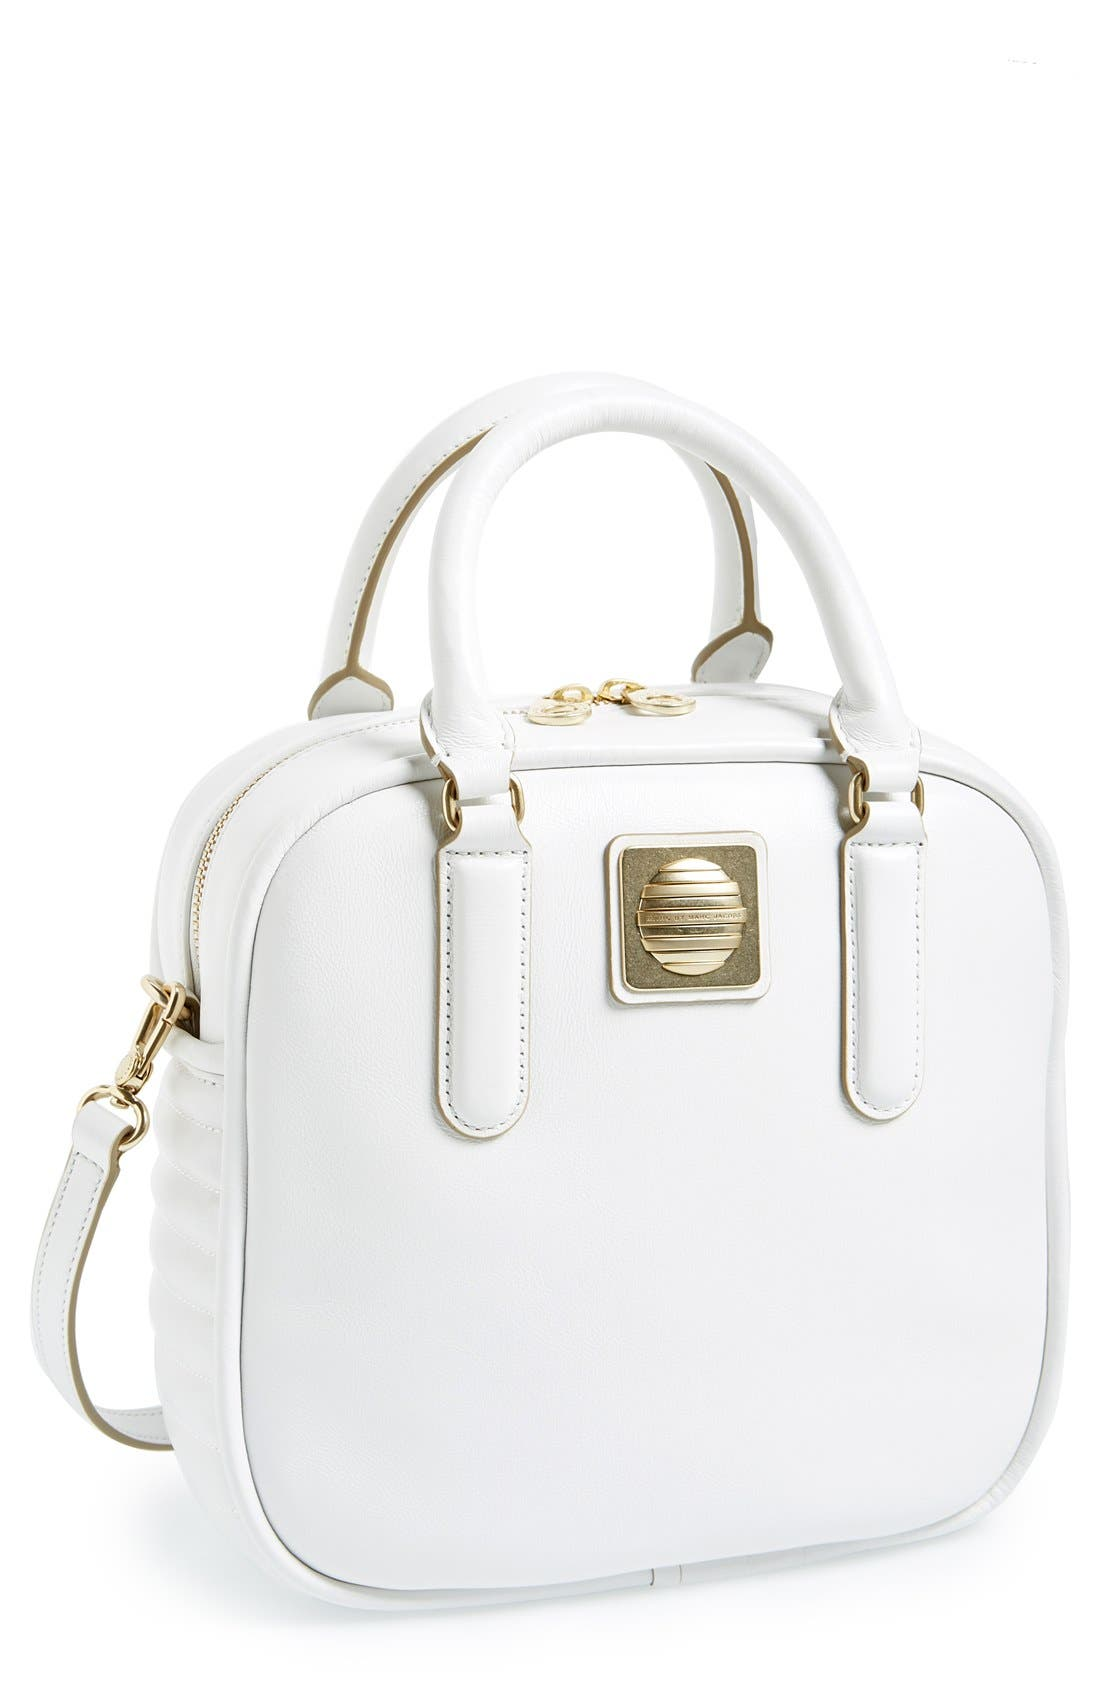 Alternate Image 1 Selected - MARC BY MARC JACOBS 'The Big Bind - Stevie' Leather Satchel